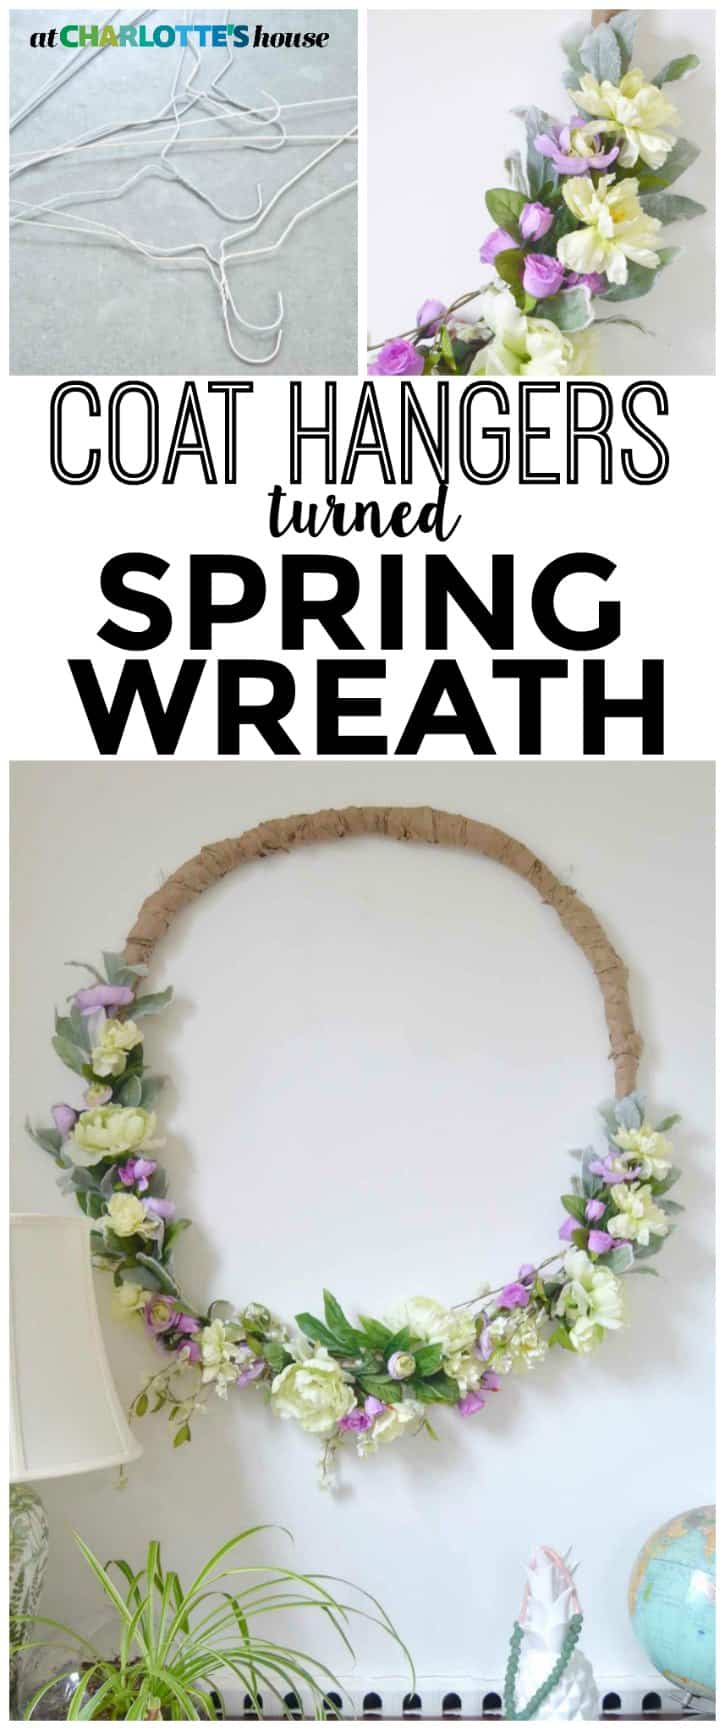 This wreath was basically free and didn't take long at ALL to make. I love how large it is- perfect for spring!